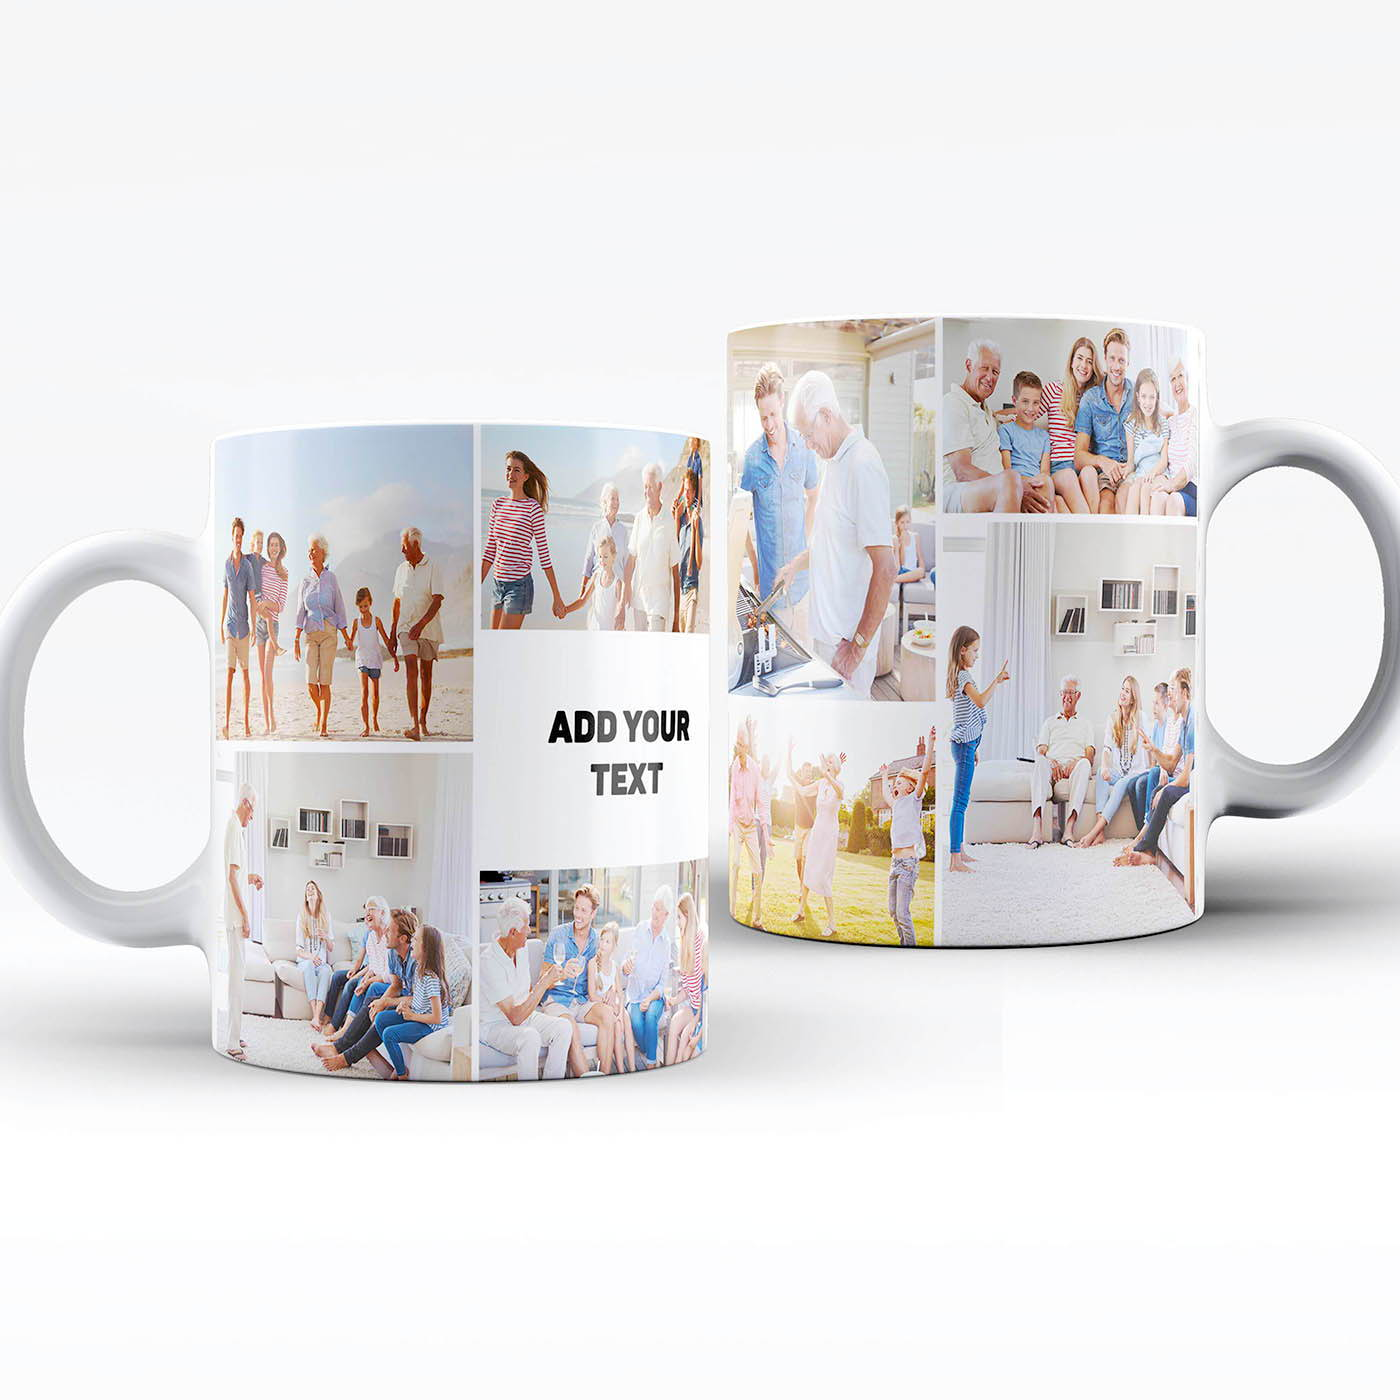 custom photo collage mugs with 45% off